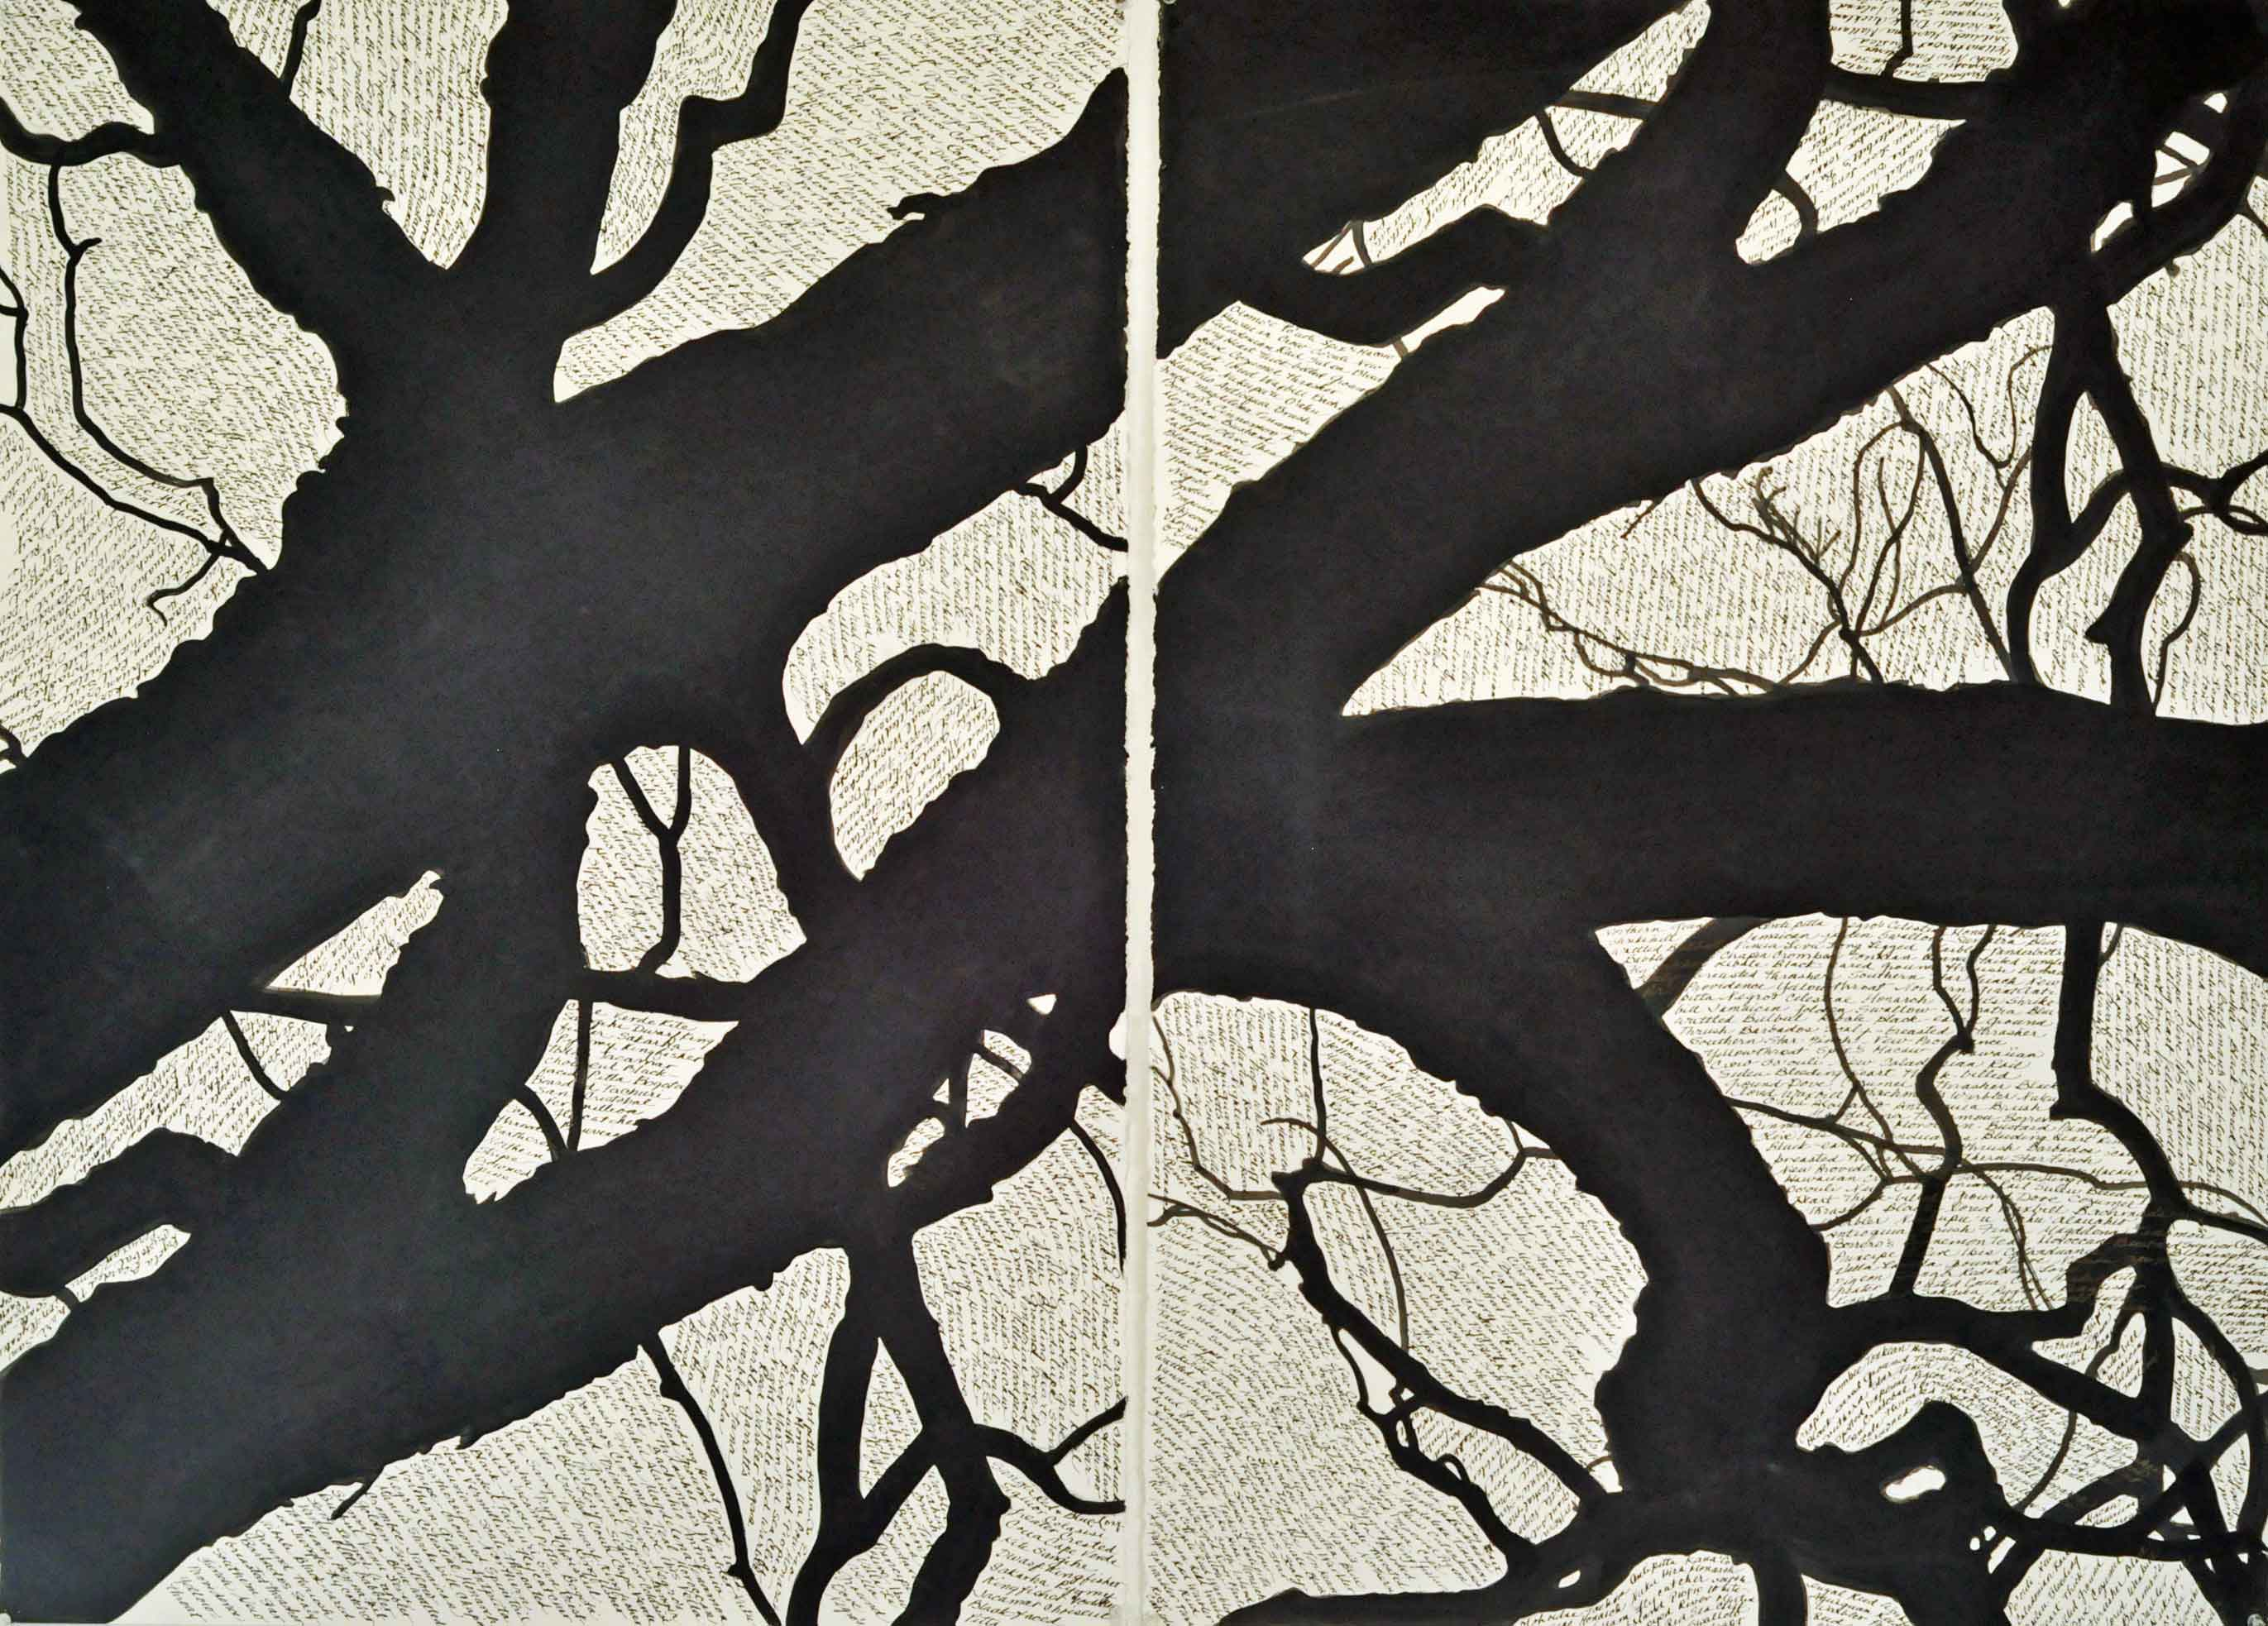 Their-Beautiful-Names---Diptych---44X30.5-each-panel---2014---web---